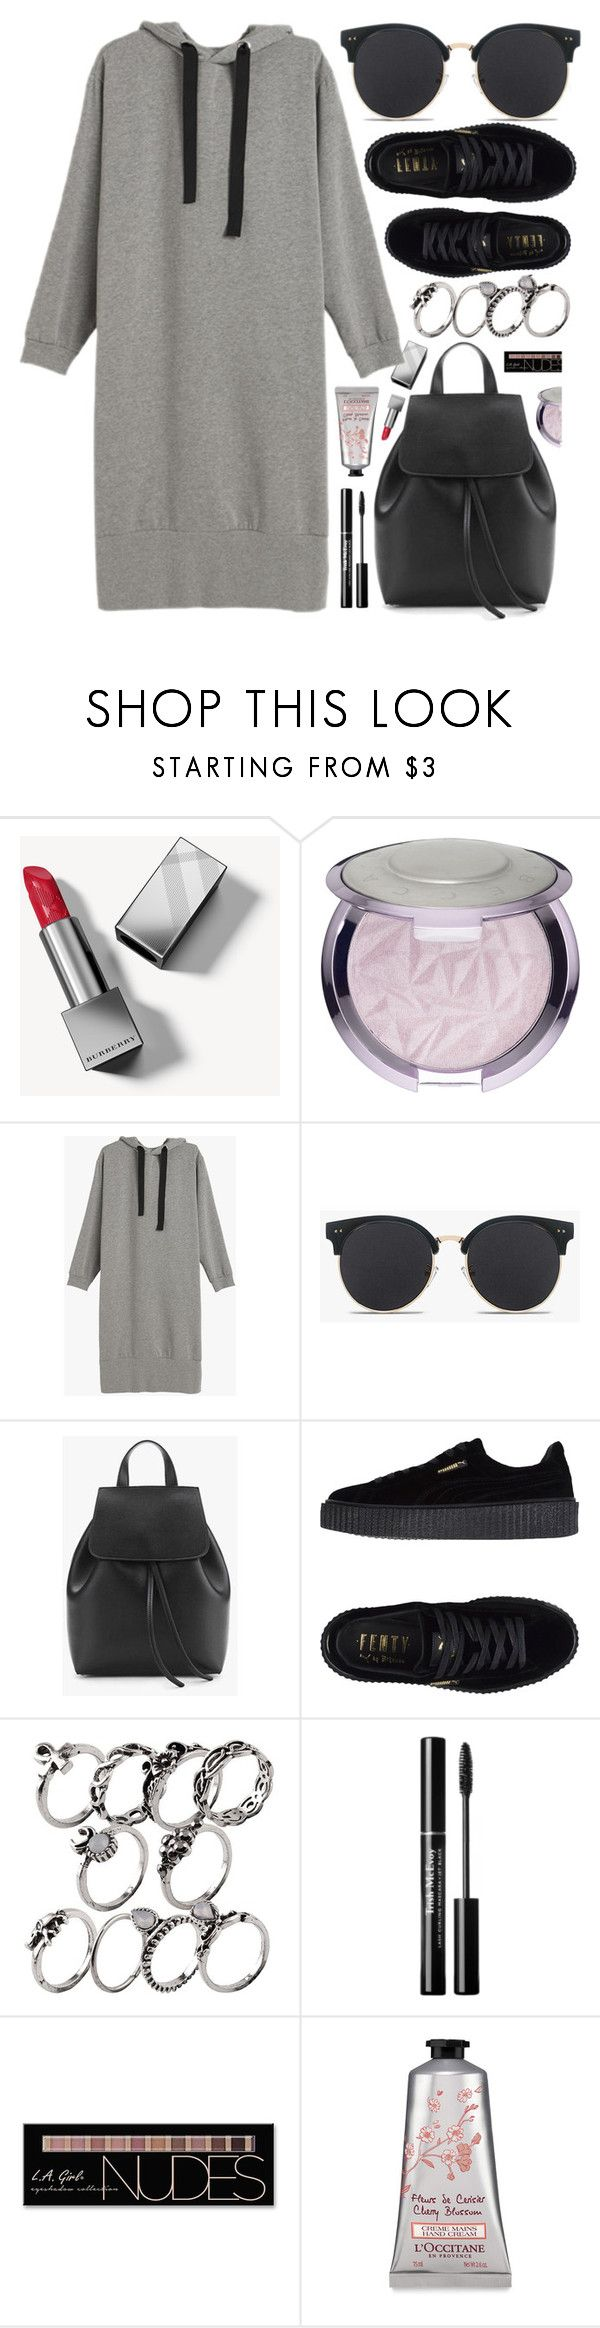 """""""Sporty Look"""" by genuine-people ❤ liked on Polyvore featuring Burberry, Puma, Charlotte Russe, black and gray"""